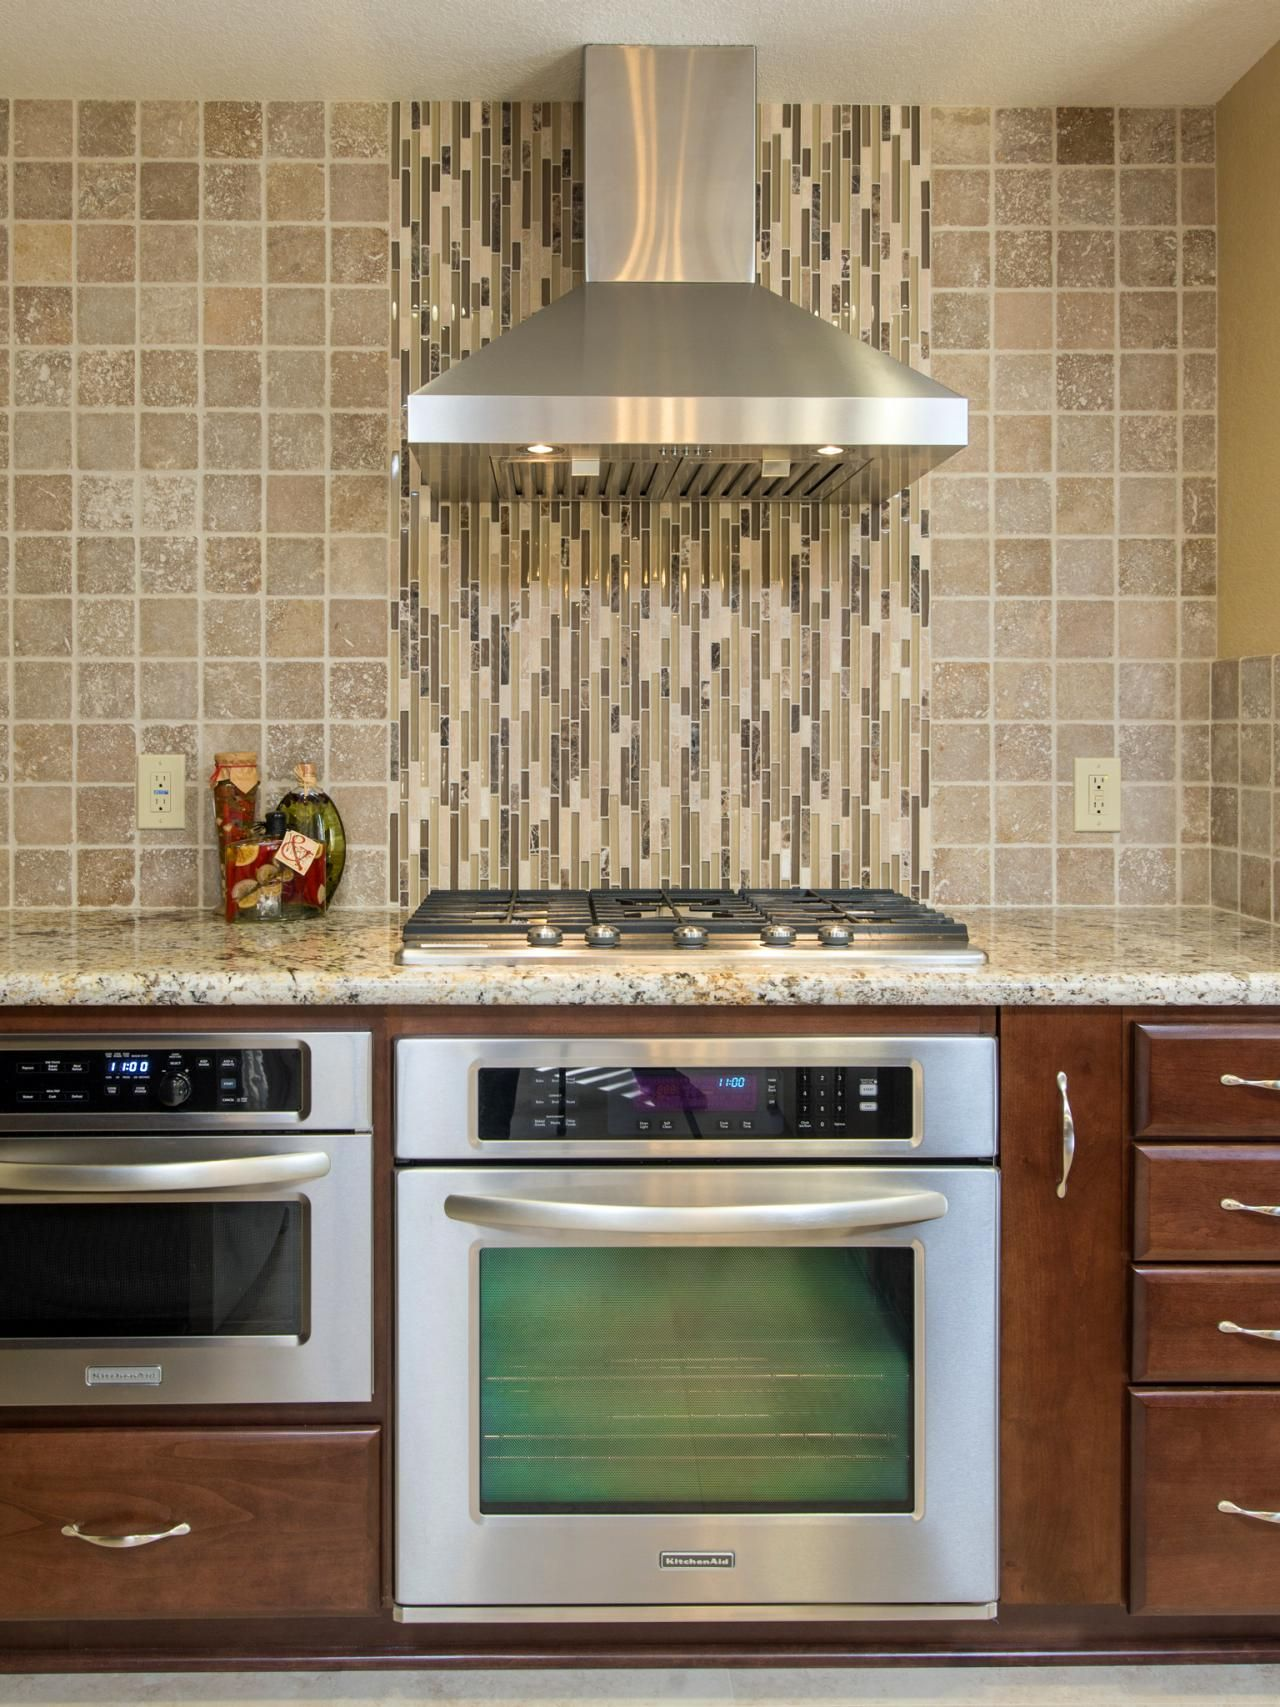 Ceramic tile backsplashes pictures ideas tips from for Glass tile kitchen backsplash ideas